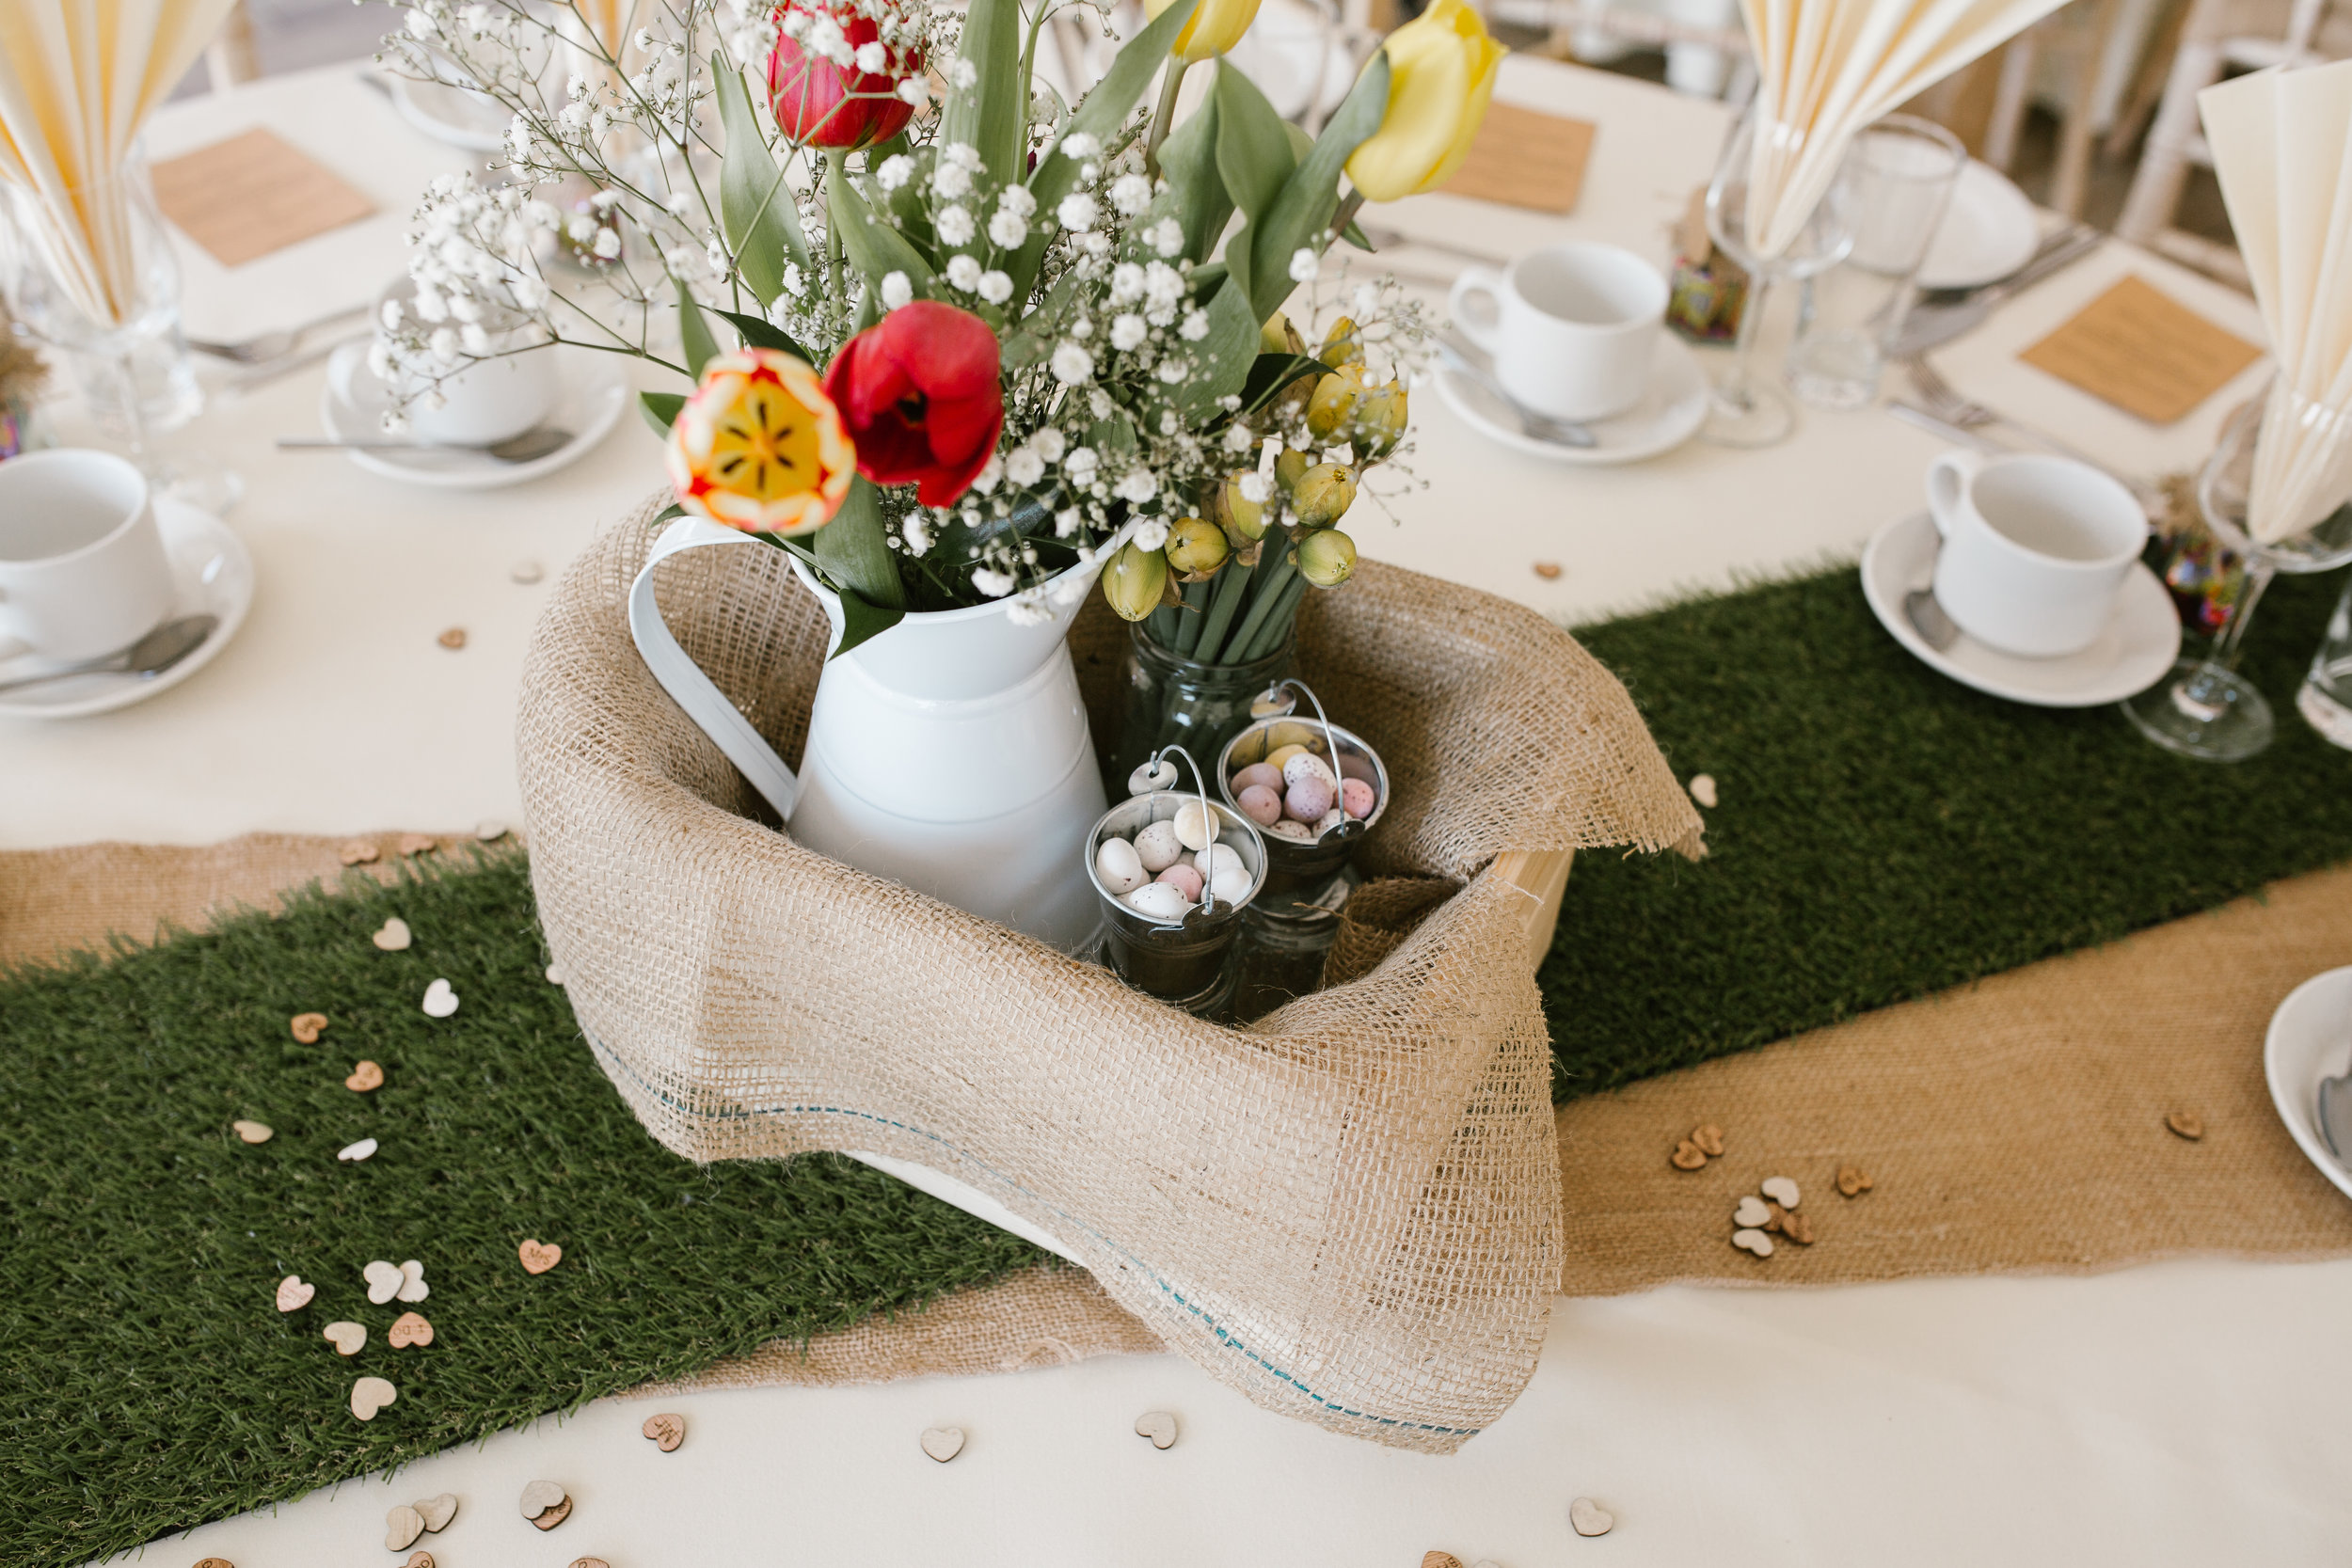 detail shot of the spring themed table dressing